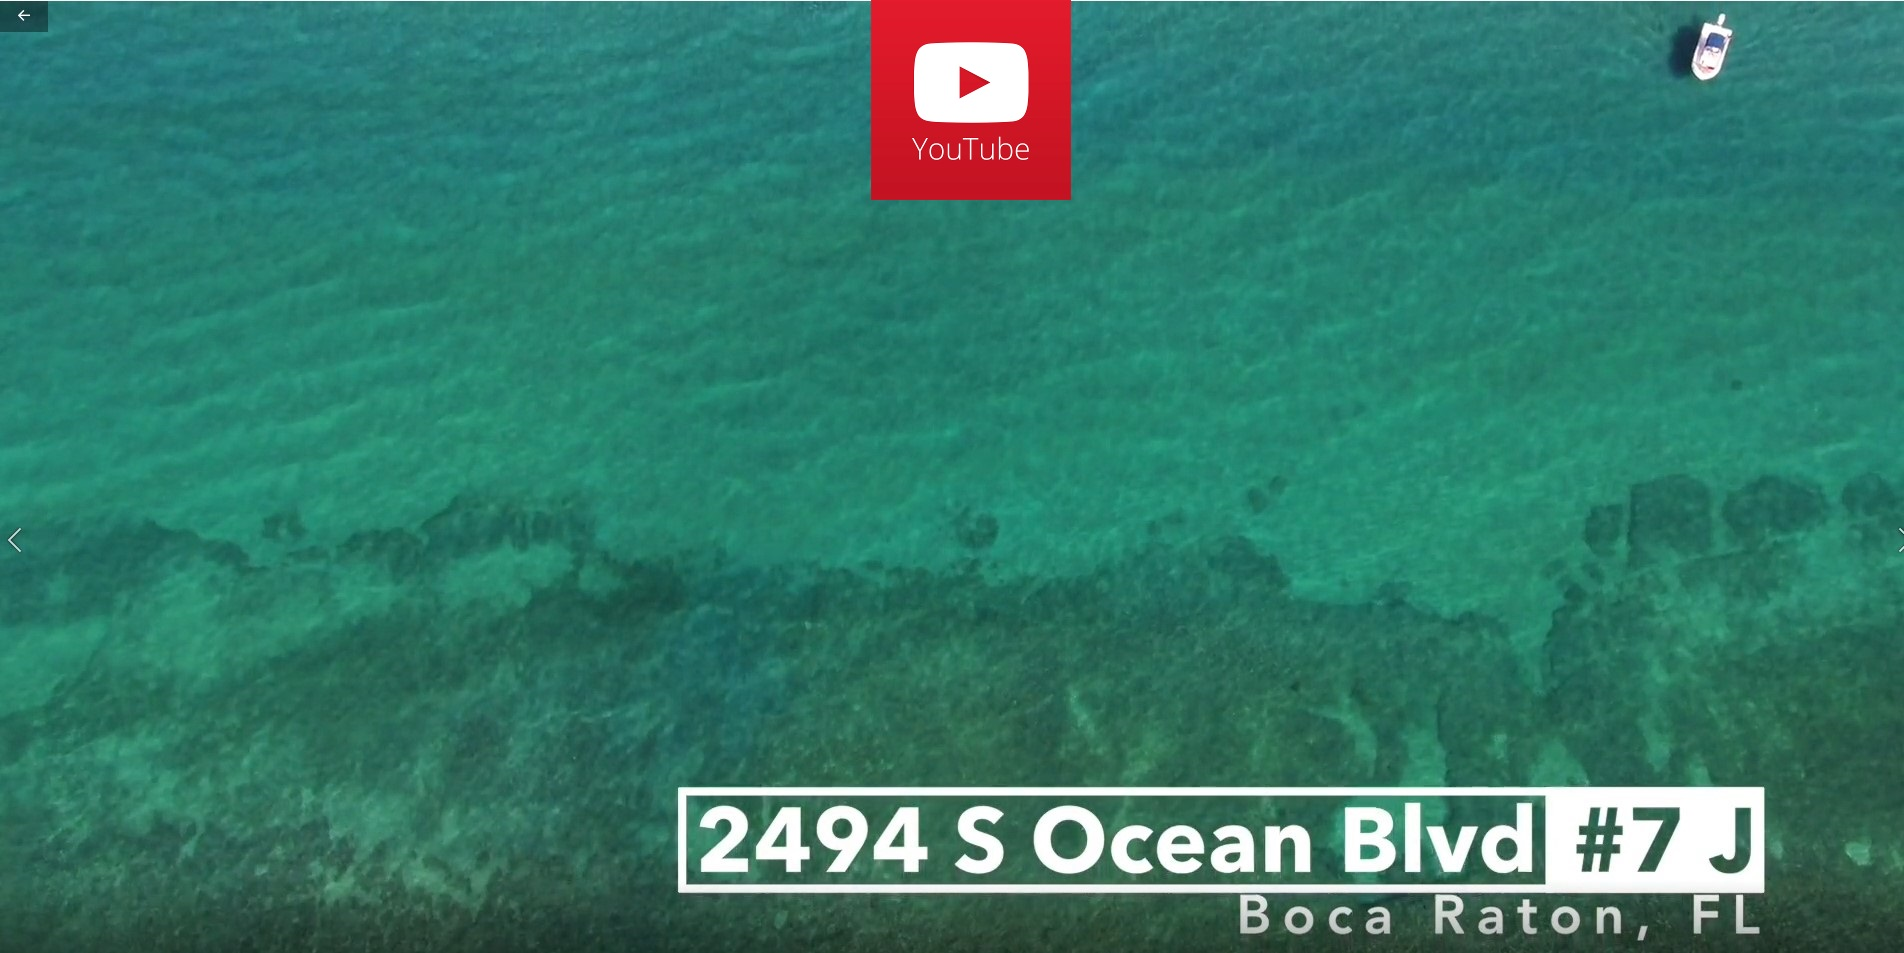 Click the image to see the video of 2494 S Ocean Blvd J7, Boca Raton, FL 33432 The Aragon luxury oceanfront condo for sale